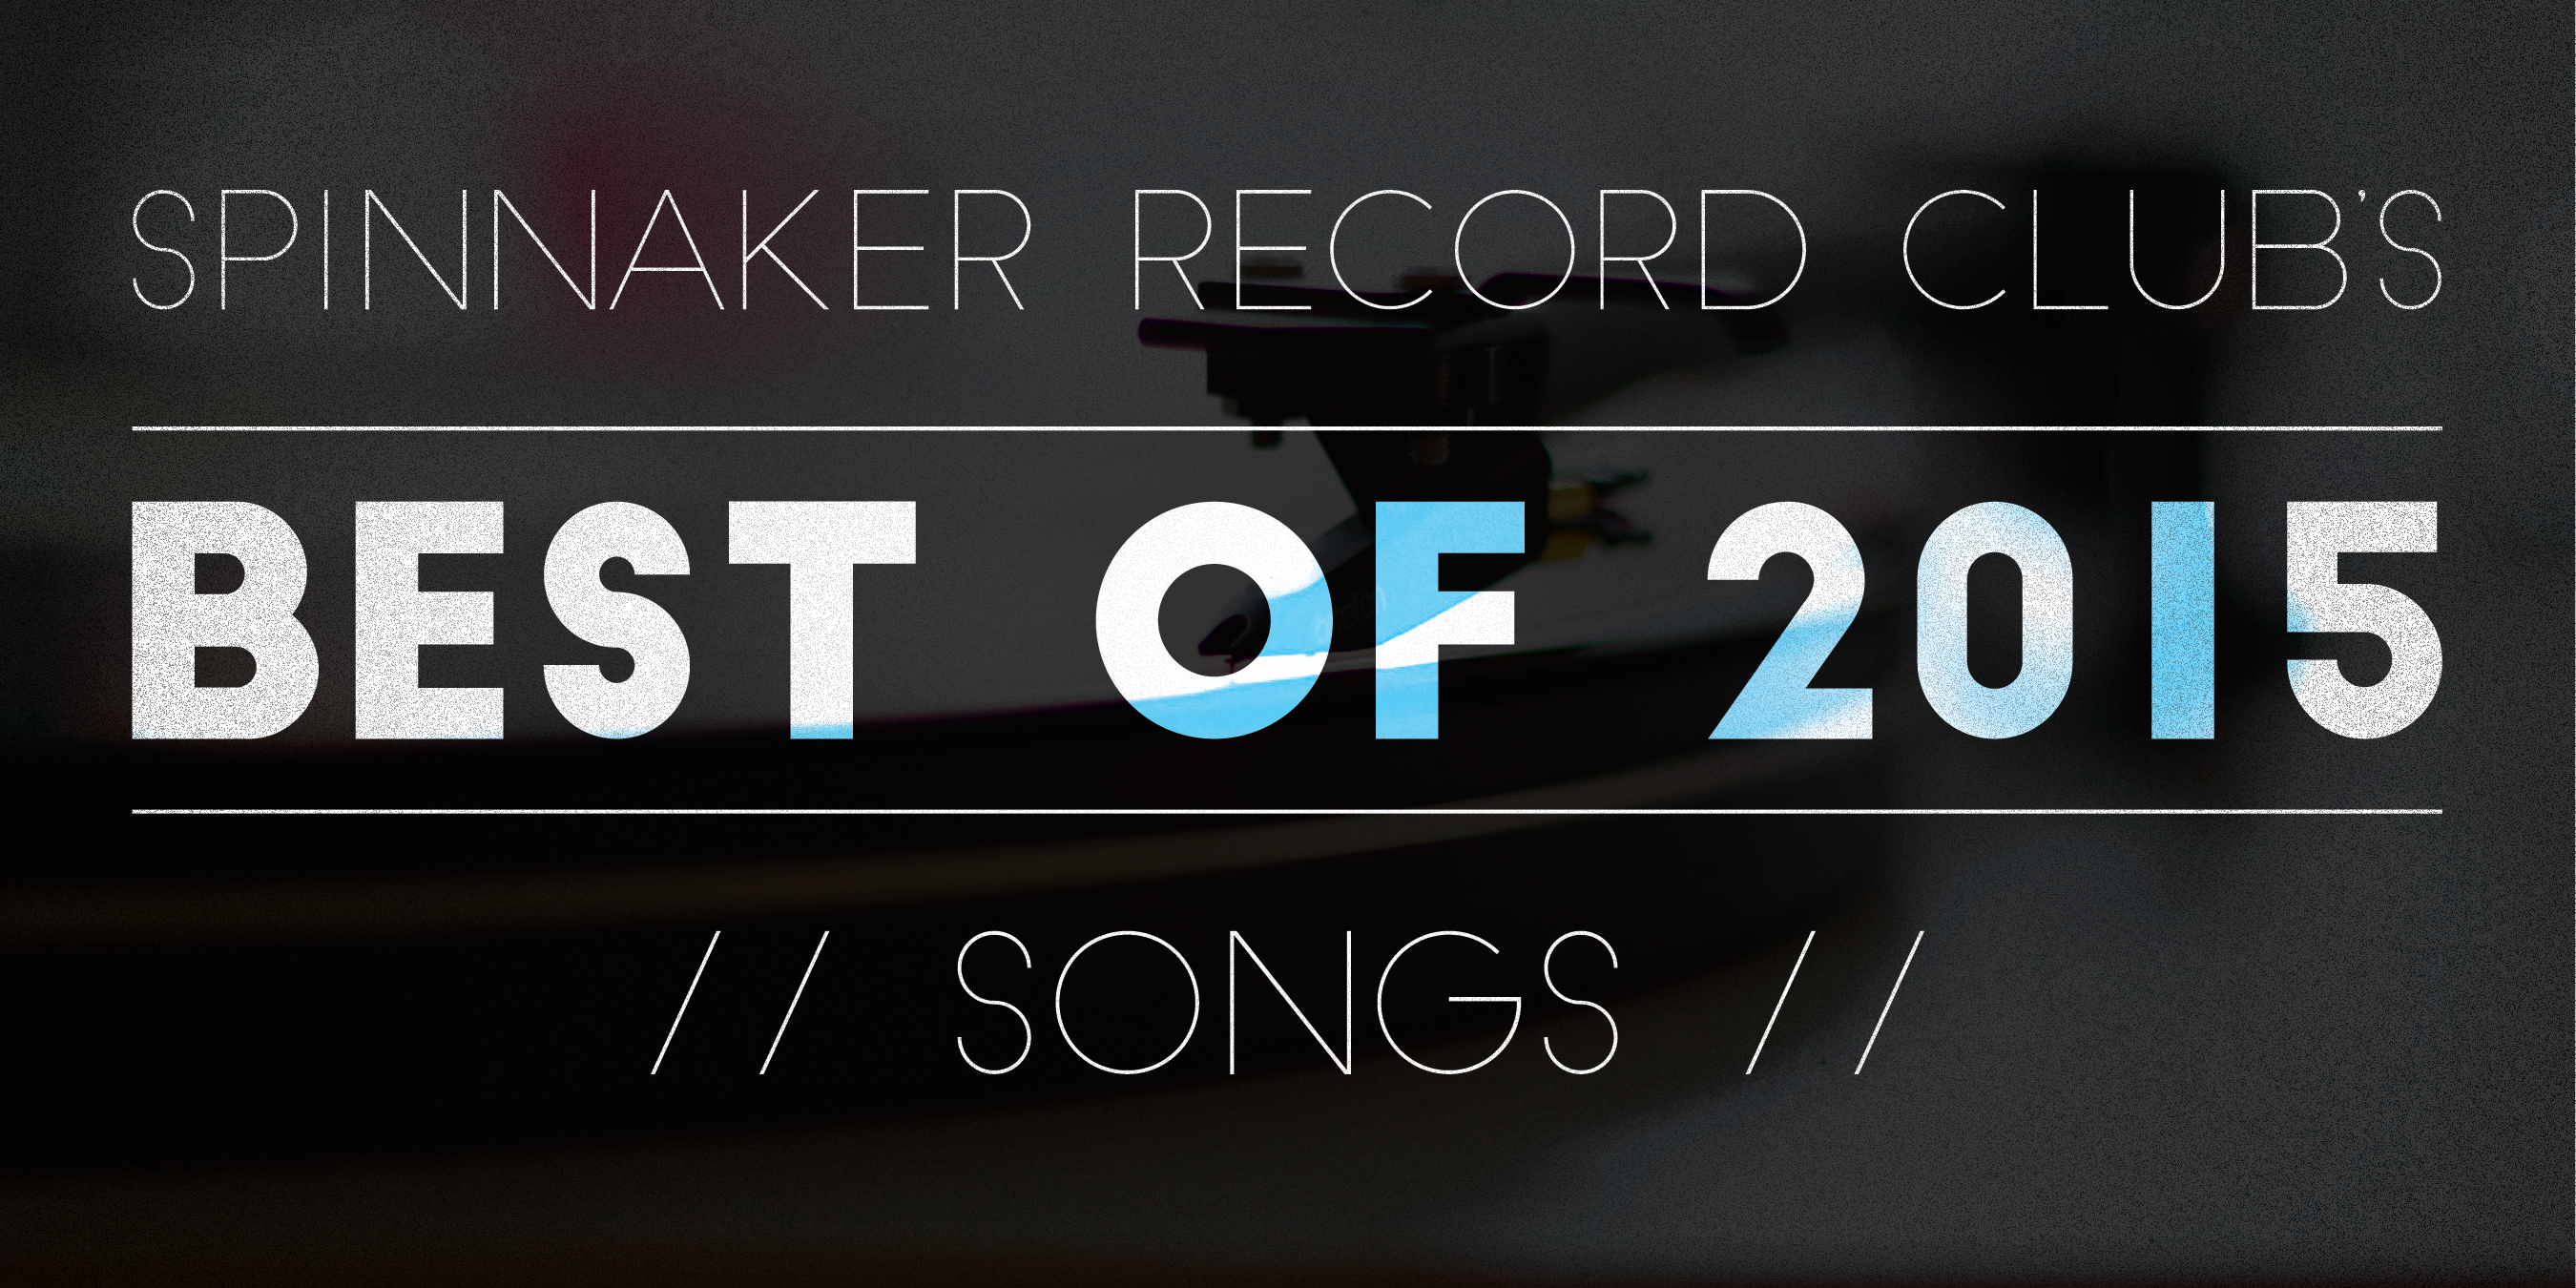 Spinnaker Record Club's Best of 2015: Songs